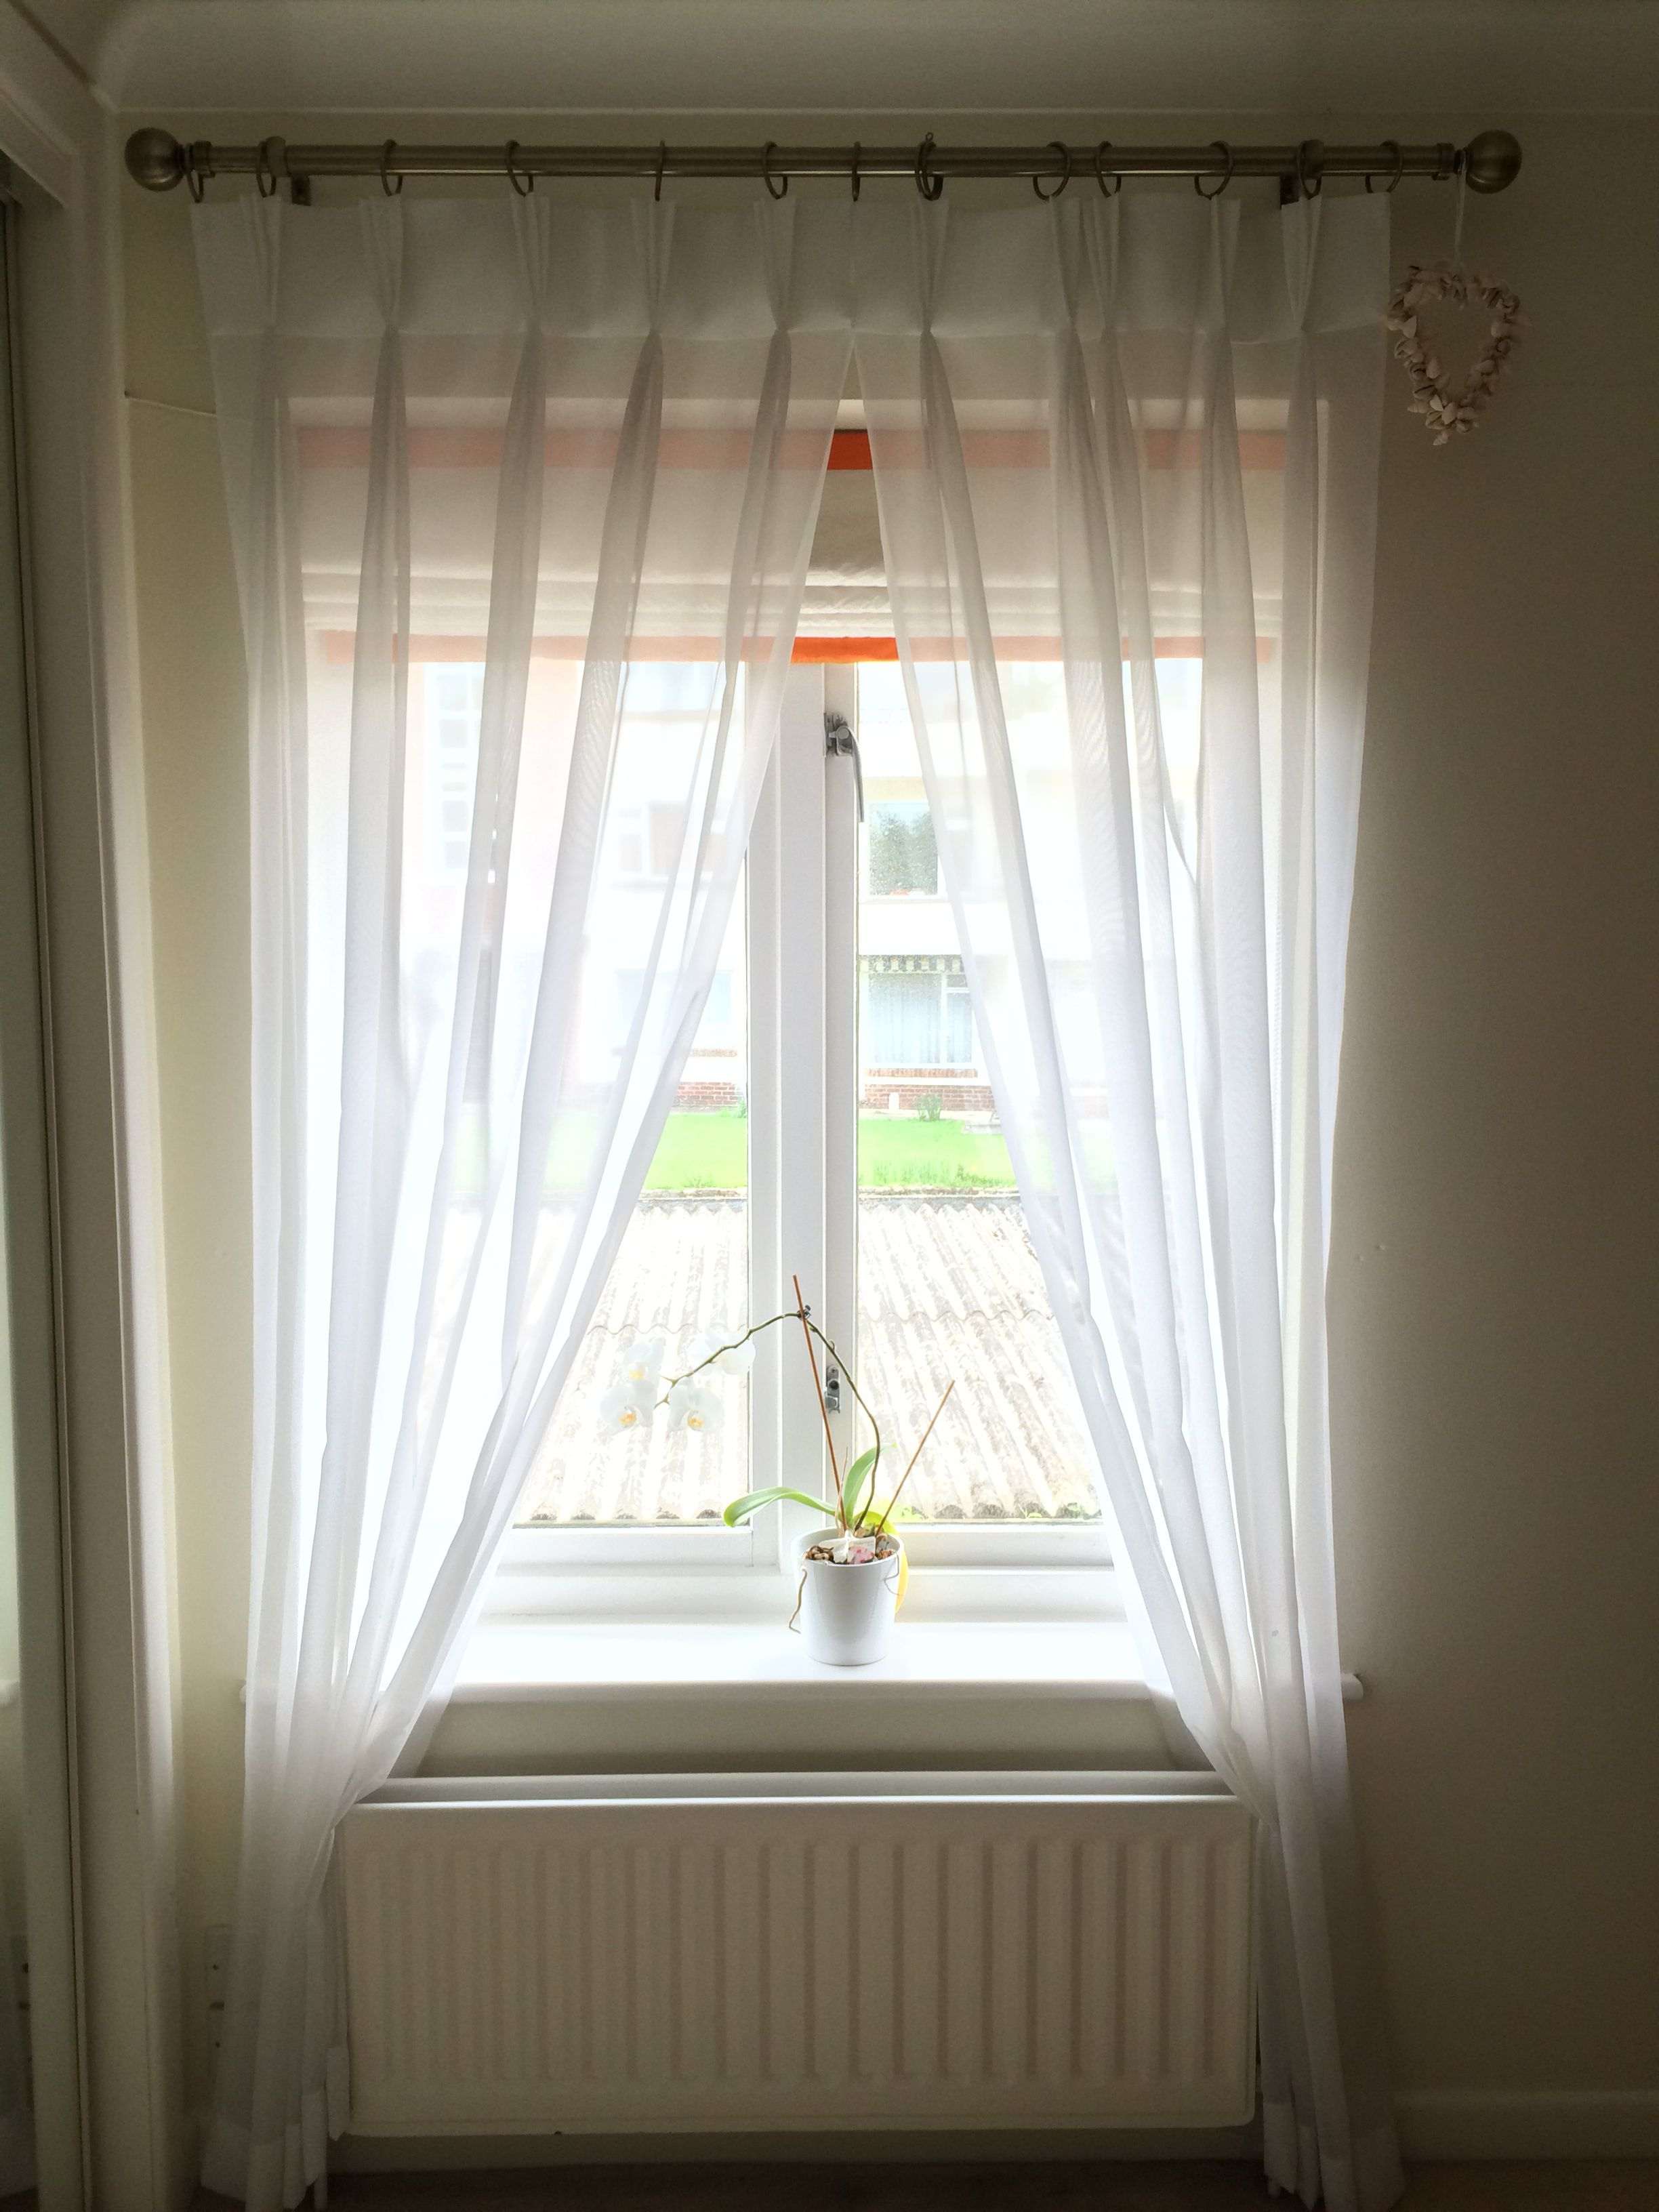 Triple Pinchpleat Voils With A Blackout Interlined Silk Roman Blind